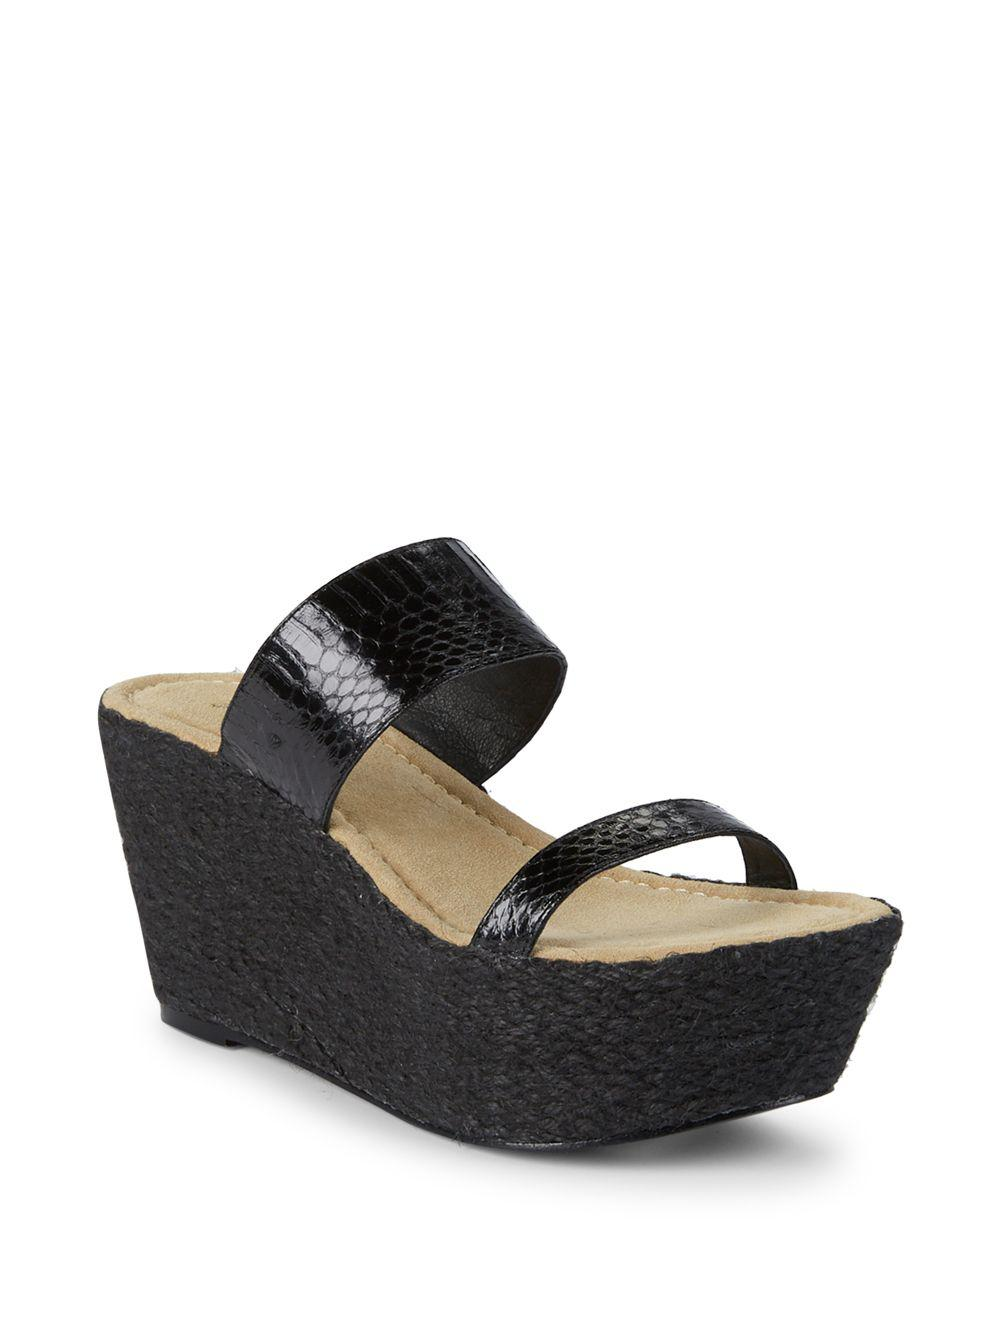 Casual concurrence kimber james heels wedge excellent